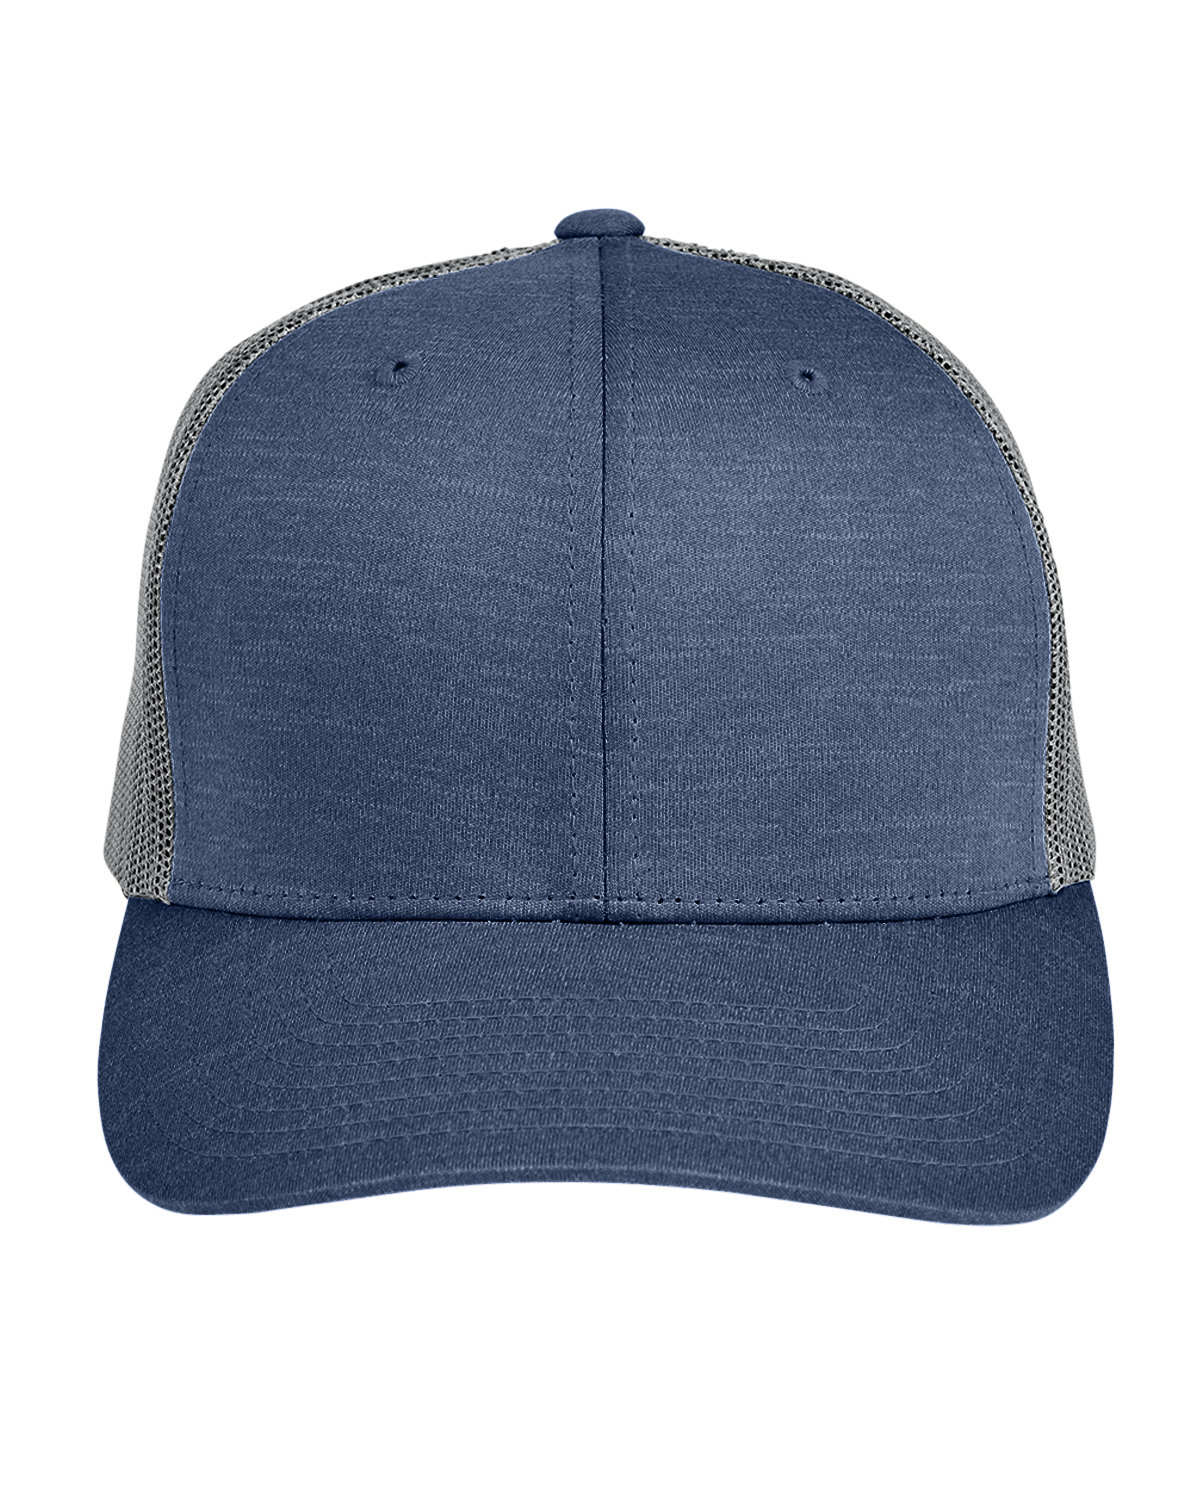 Team 365 by Yupoong® Adult Zone Sonic Heather Trucker Cap SP D NVY HT/ S G